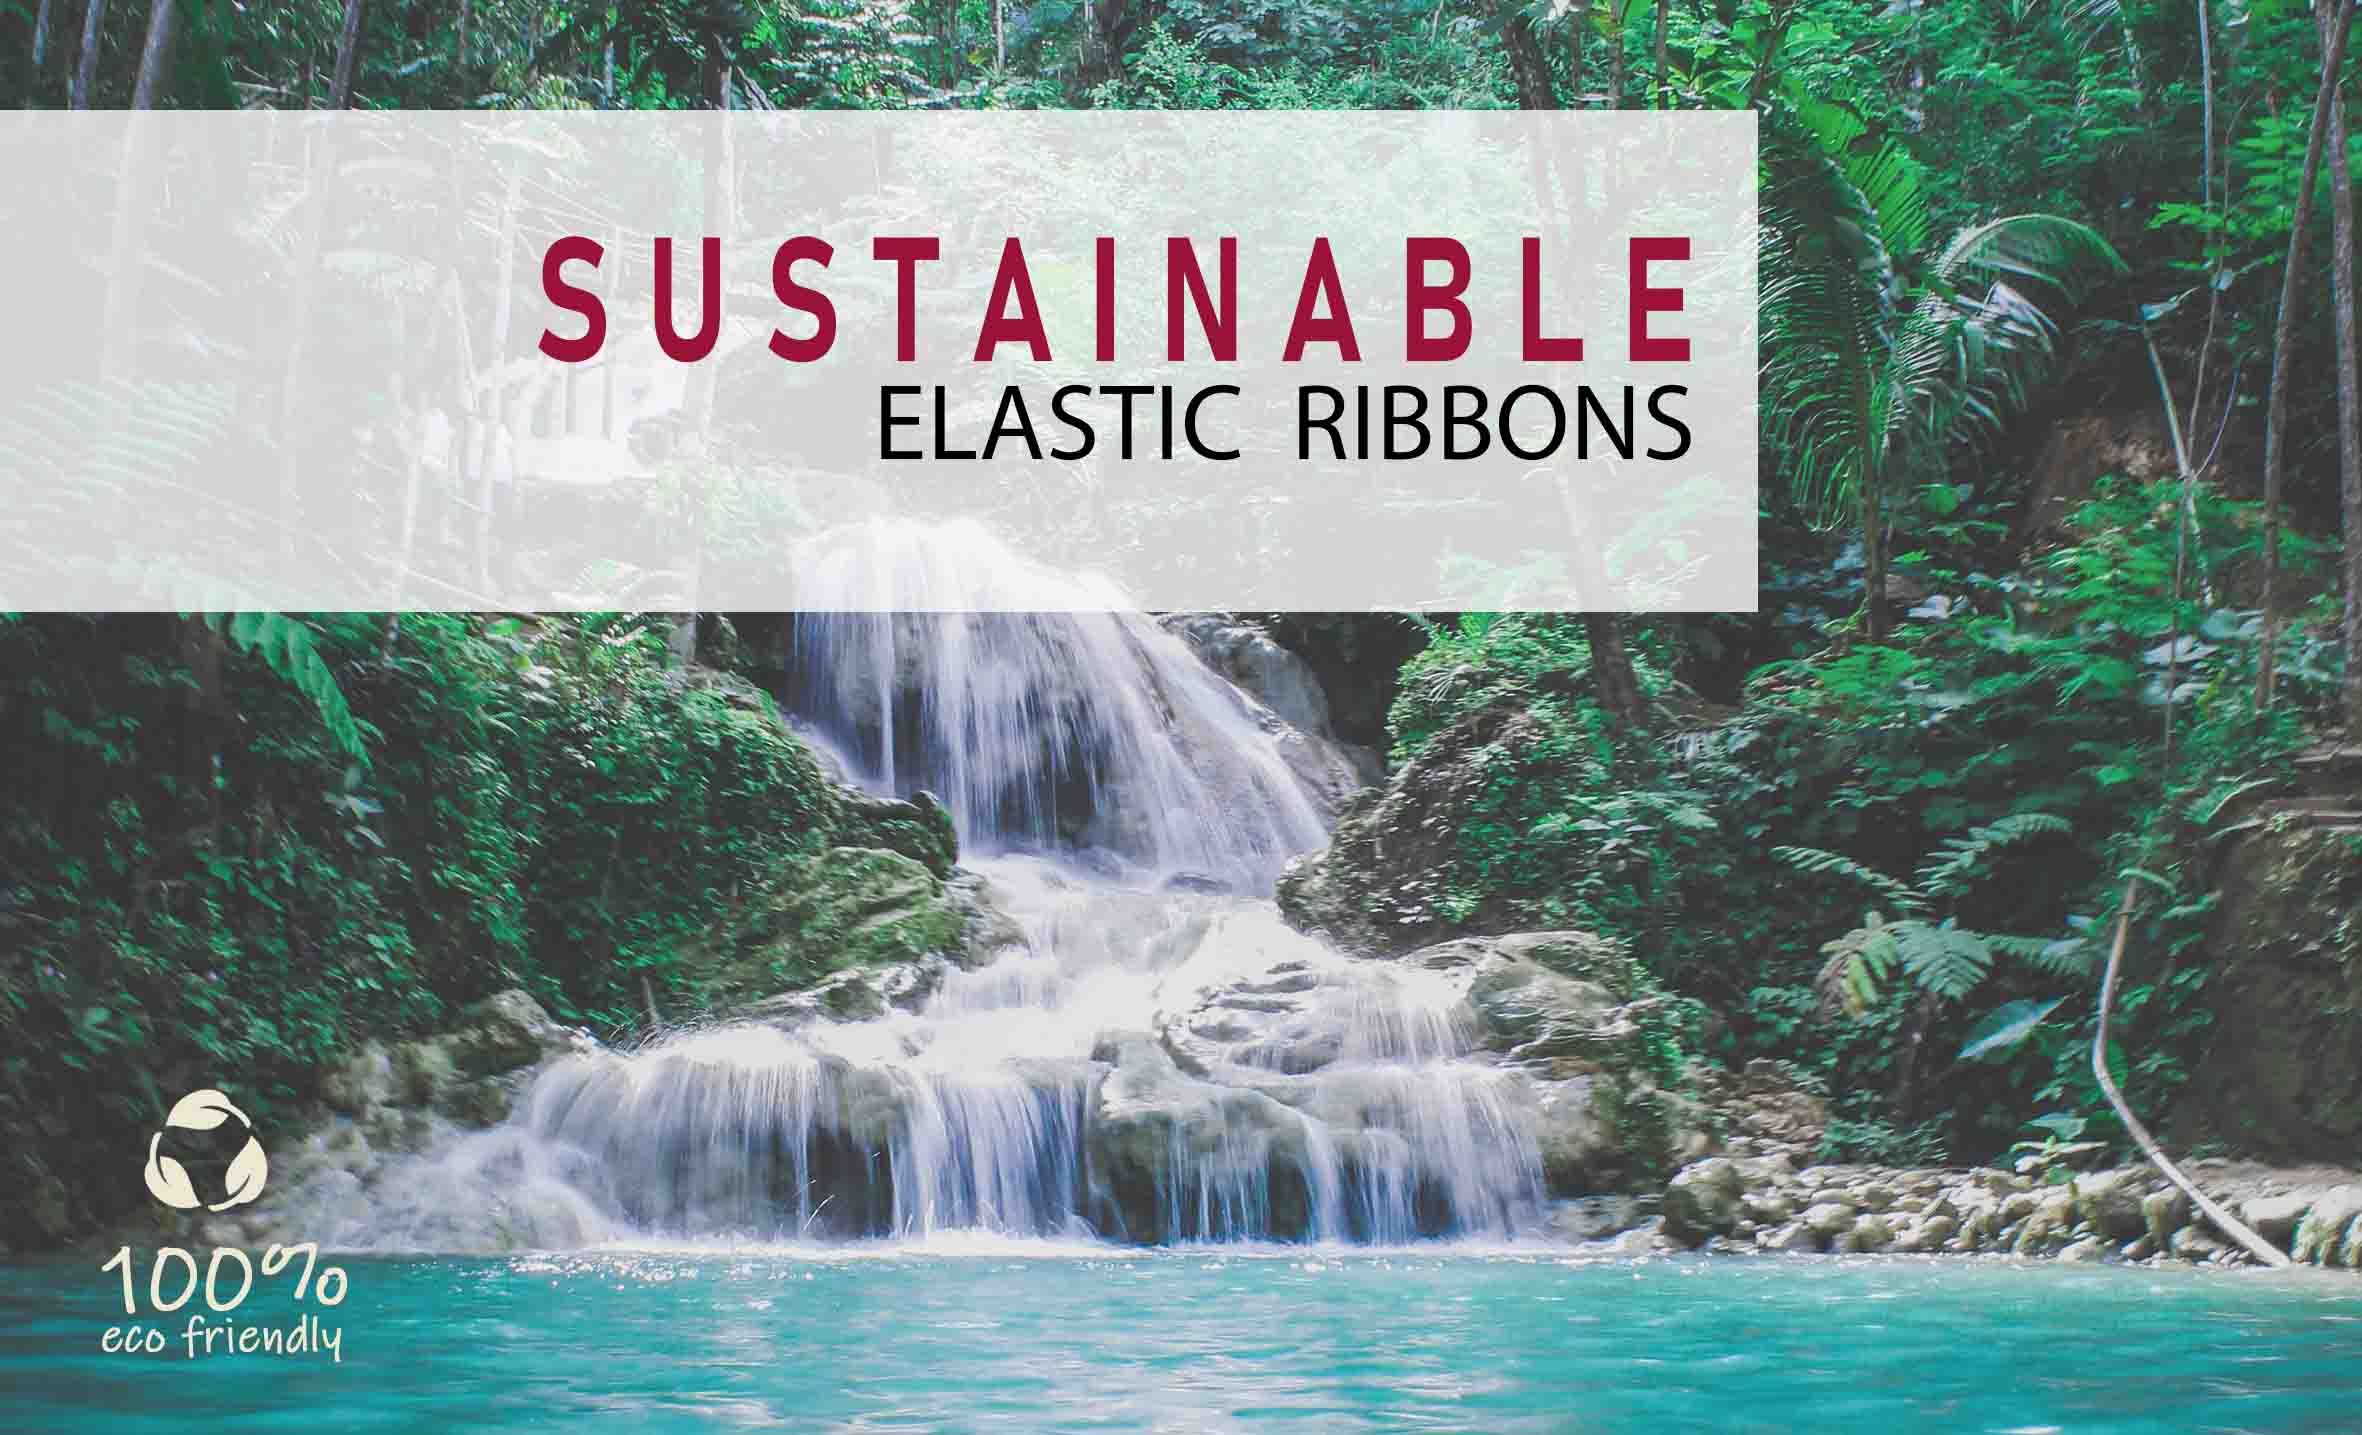 SUSTAINABLE ELASTIC RIBBONS. OBJECTIVE: SAVE THE PLANET